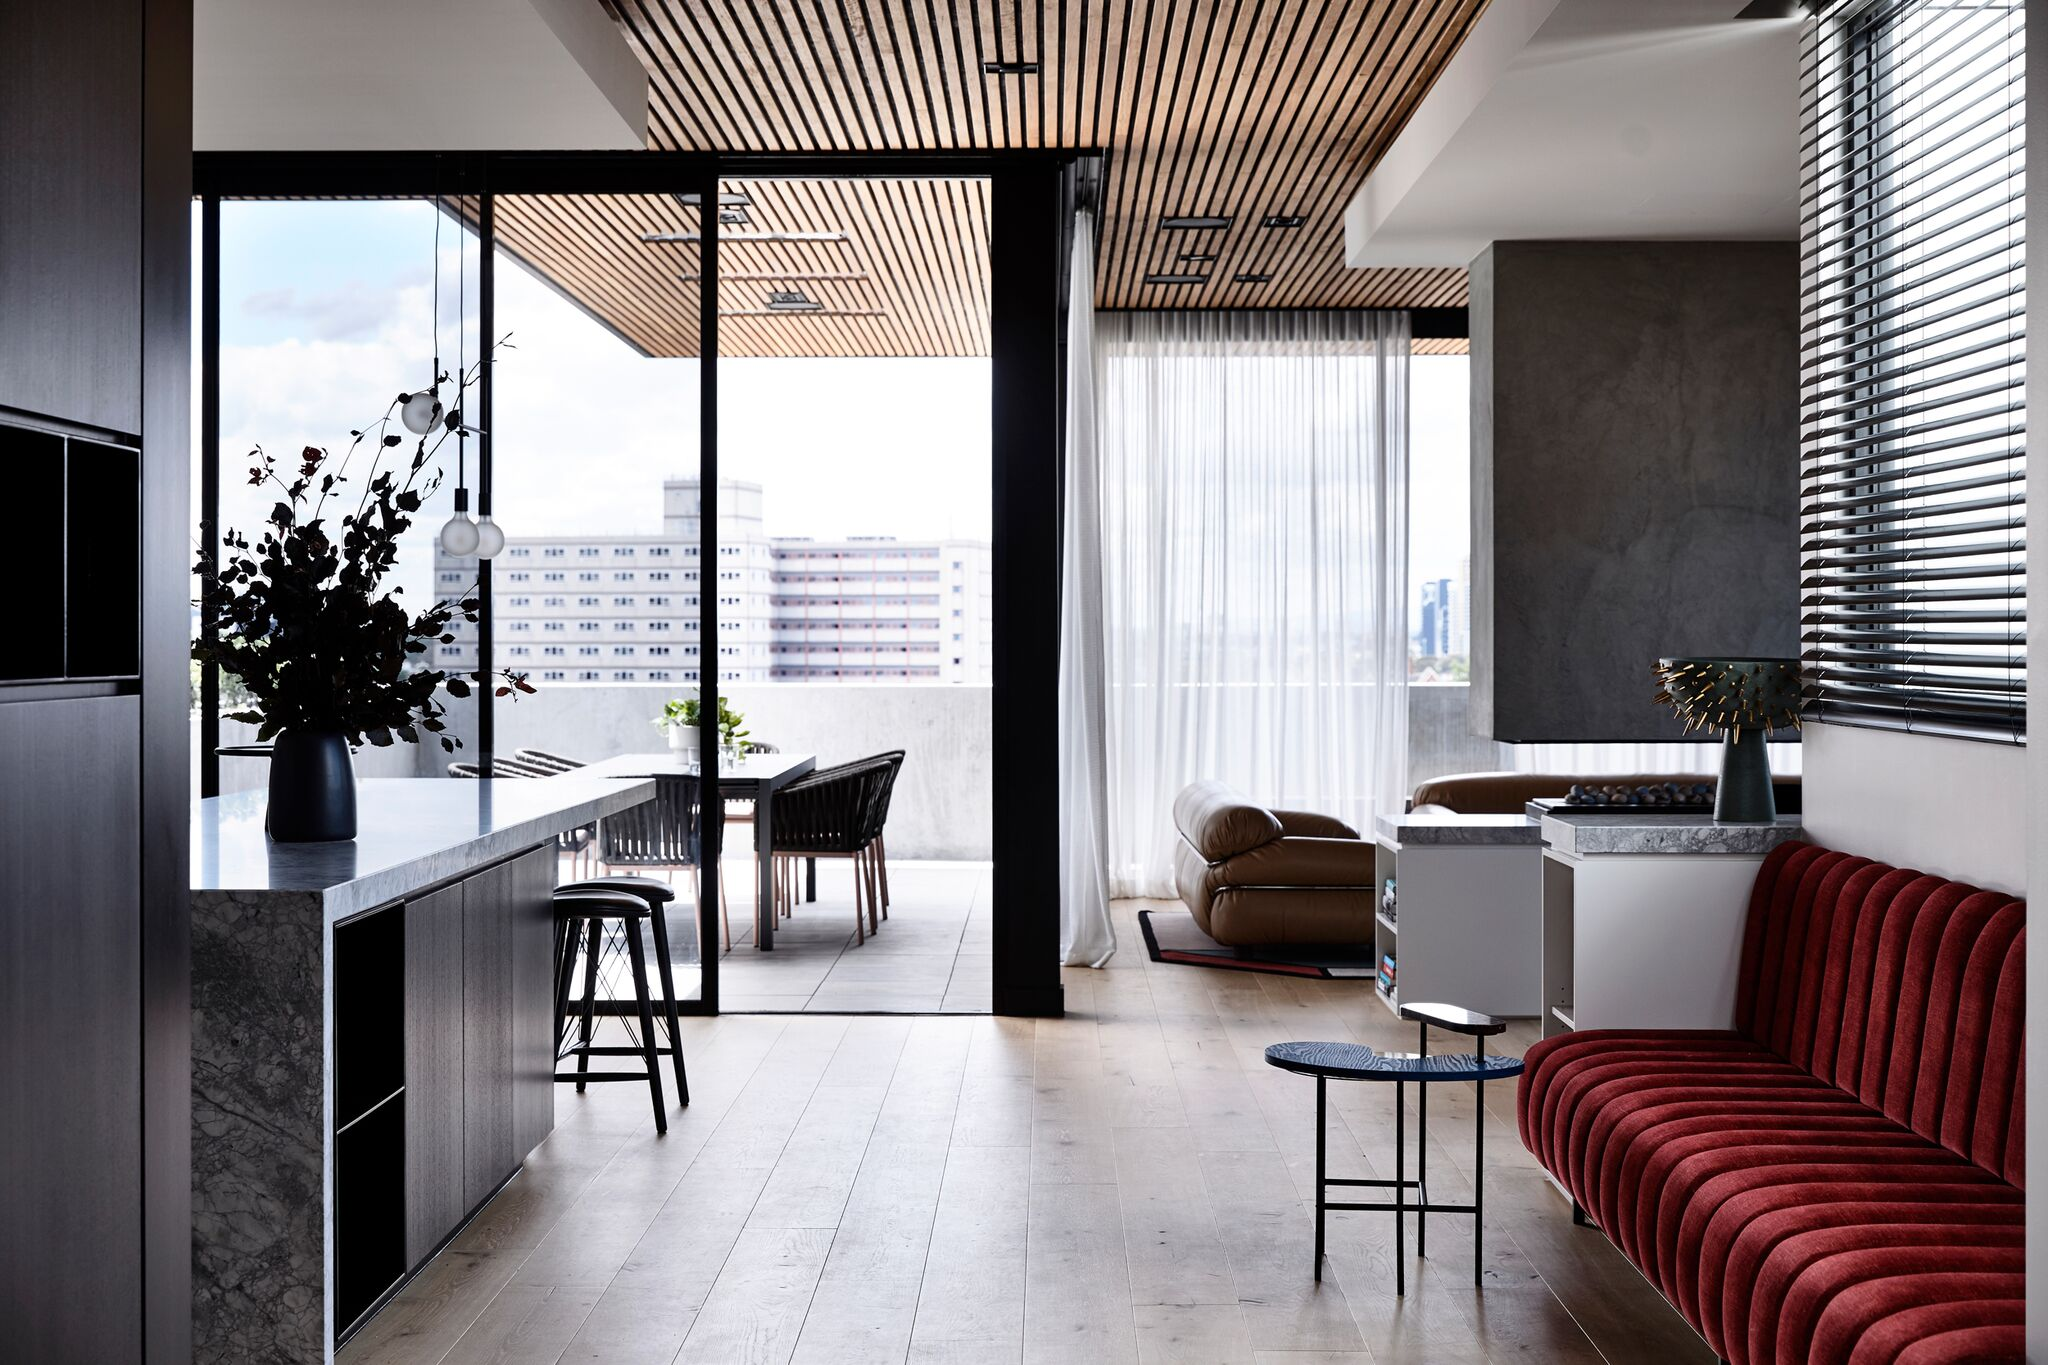 Gallery Of Holly Penthouse By Tom Robertson Architects Local Australian Bespoke Architecture & Interiors Melbourne, Vic Image 11